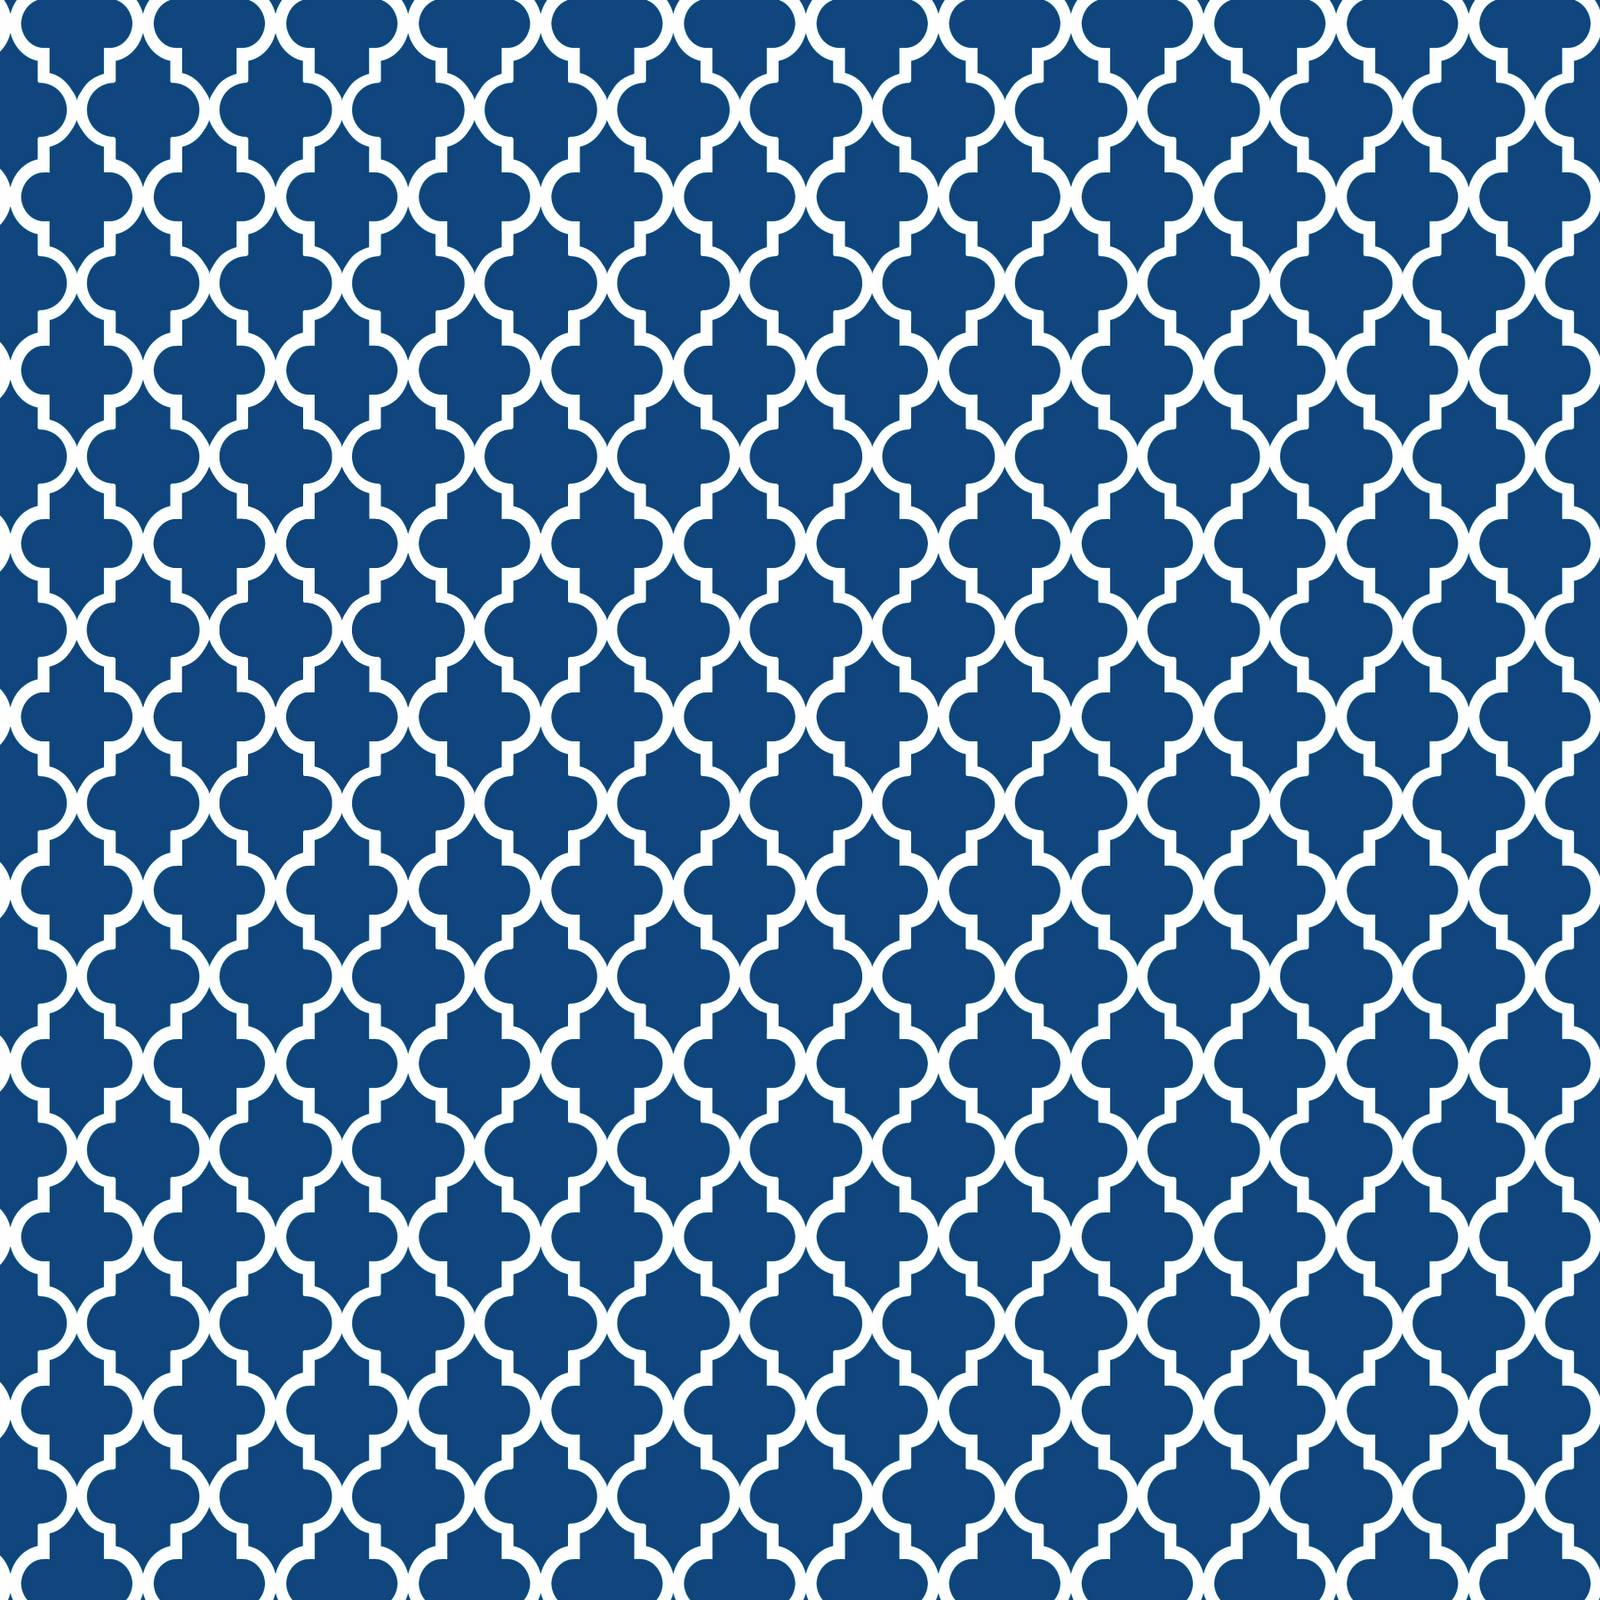 Free Printable Patterns (Click On Images And Save) | Printables - Free Printable Patterns